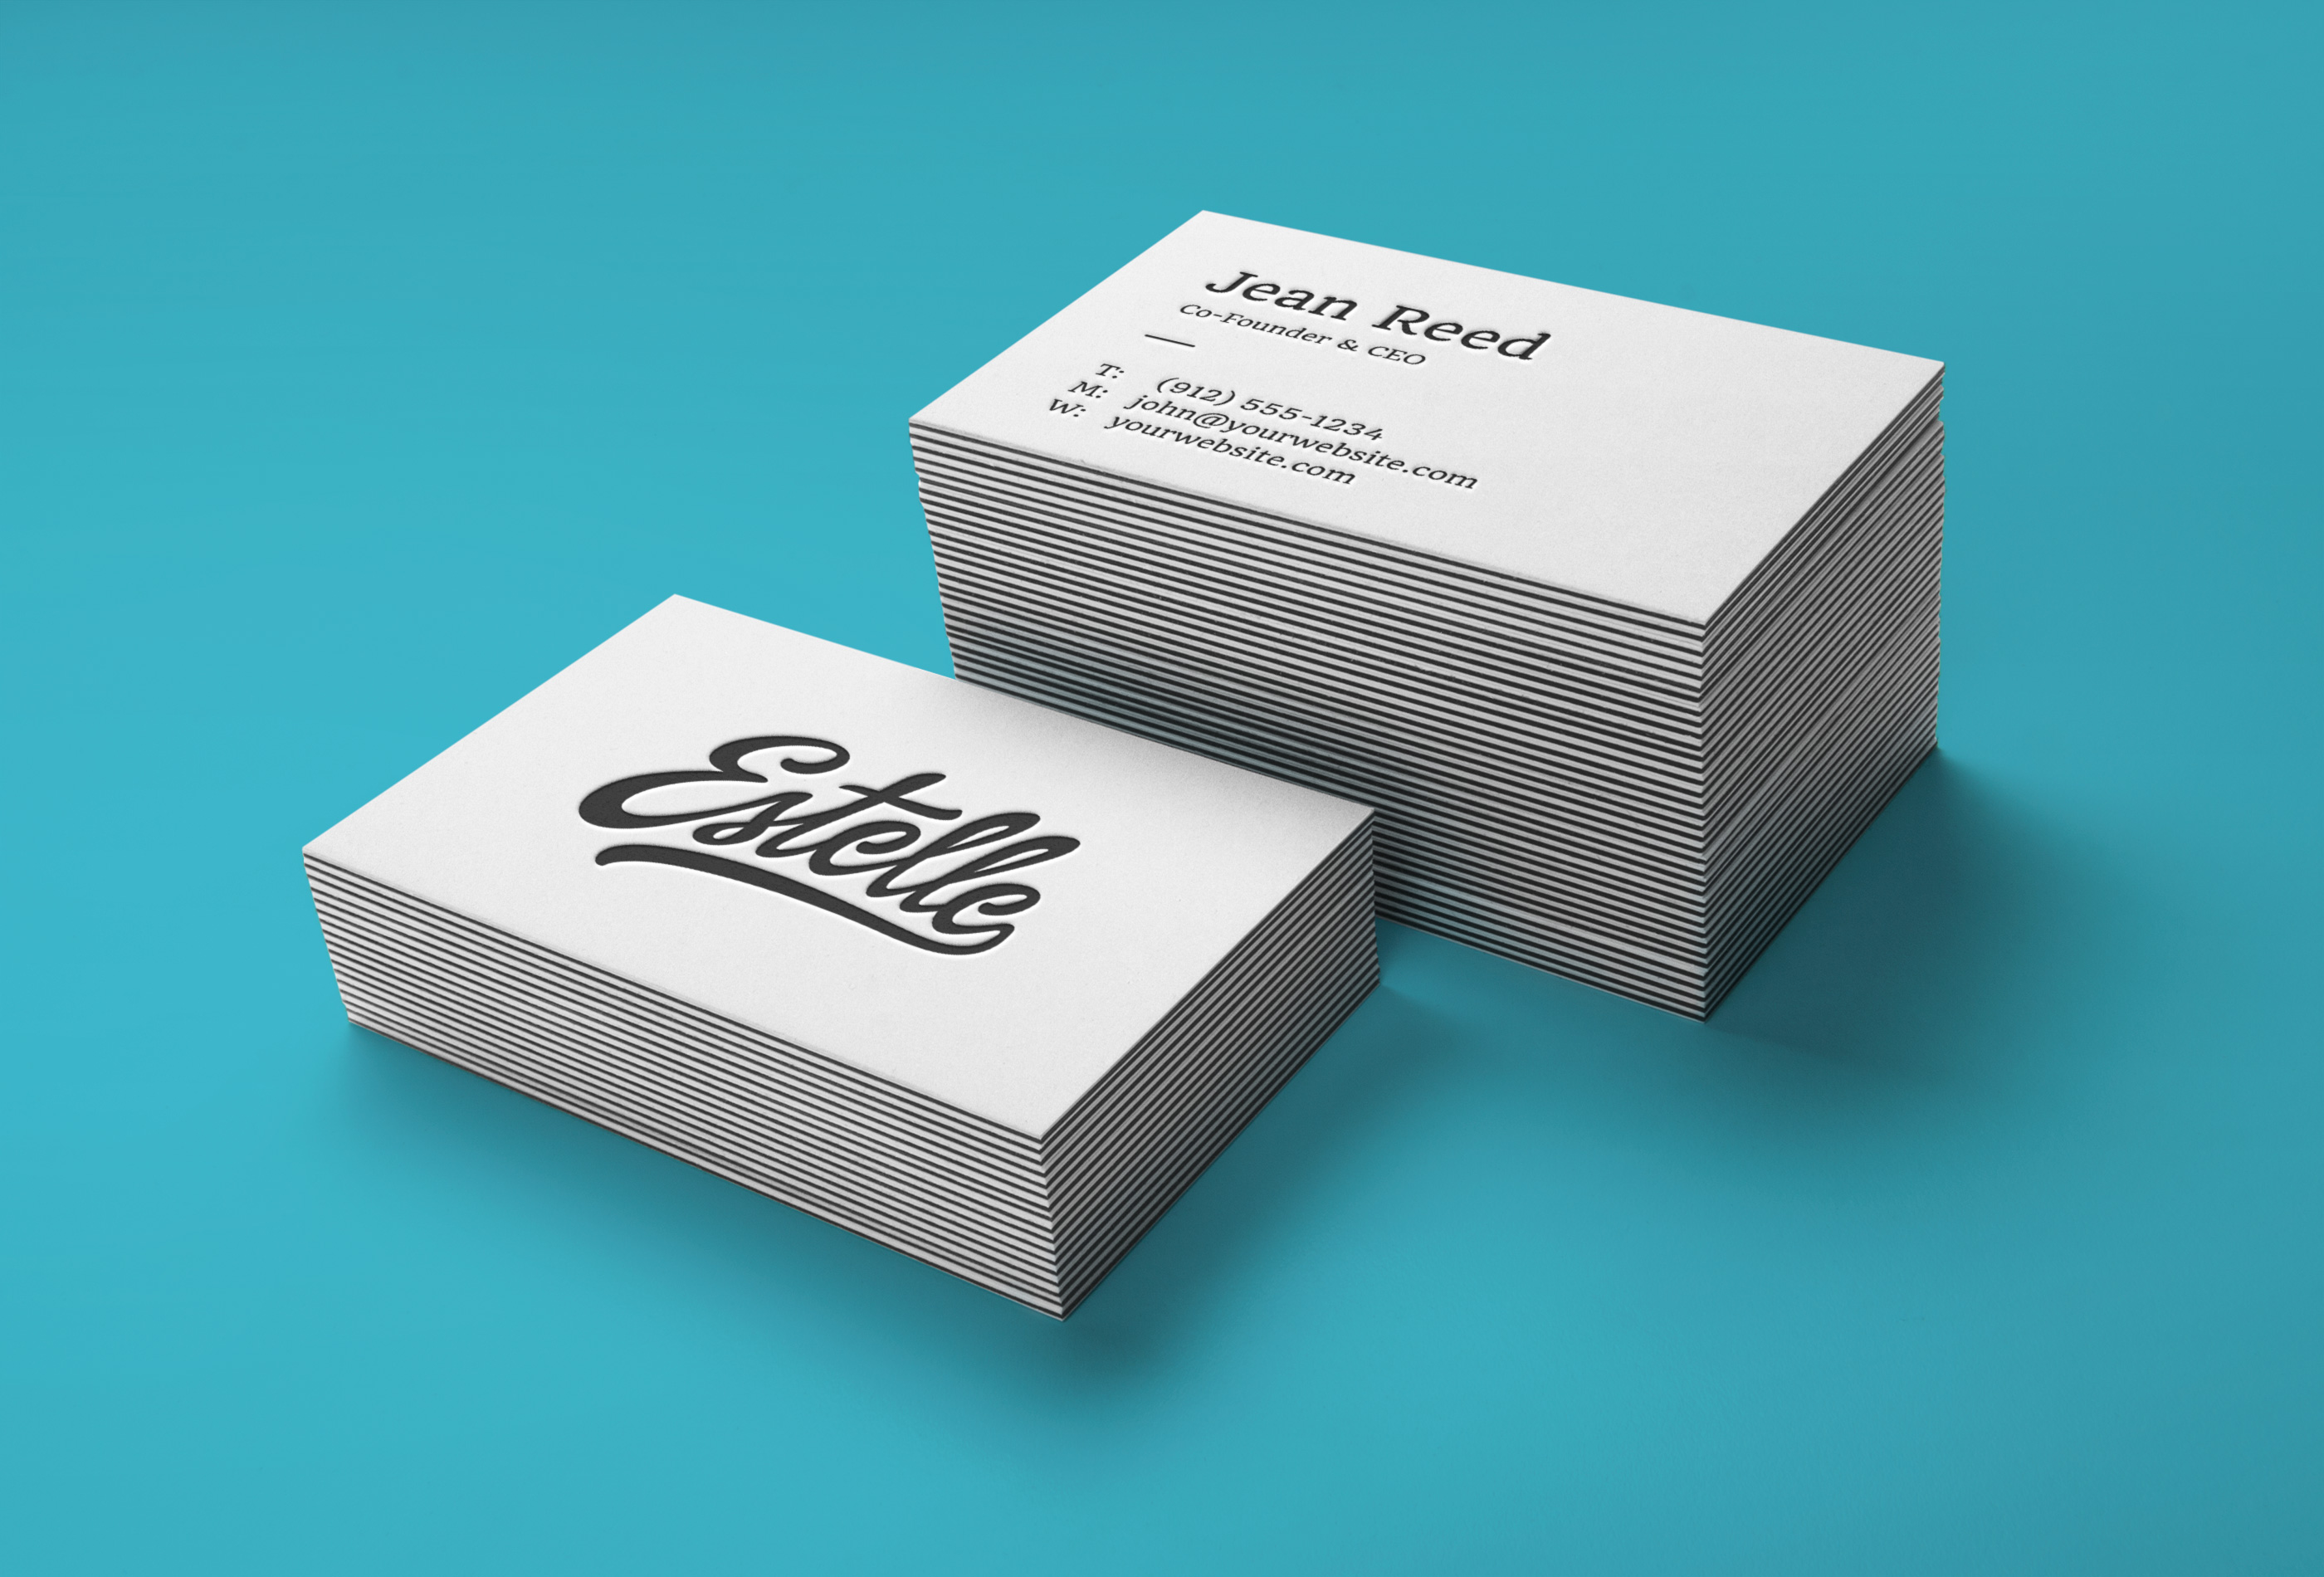 Letterpress Business Cards Long Island Images - Card Design And Card ...